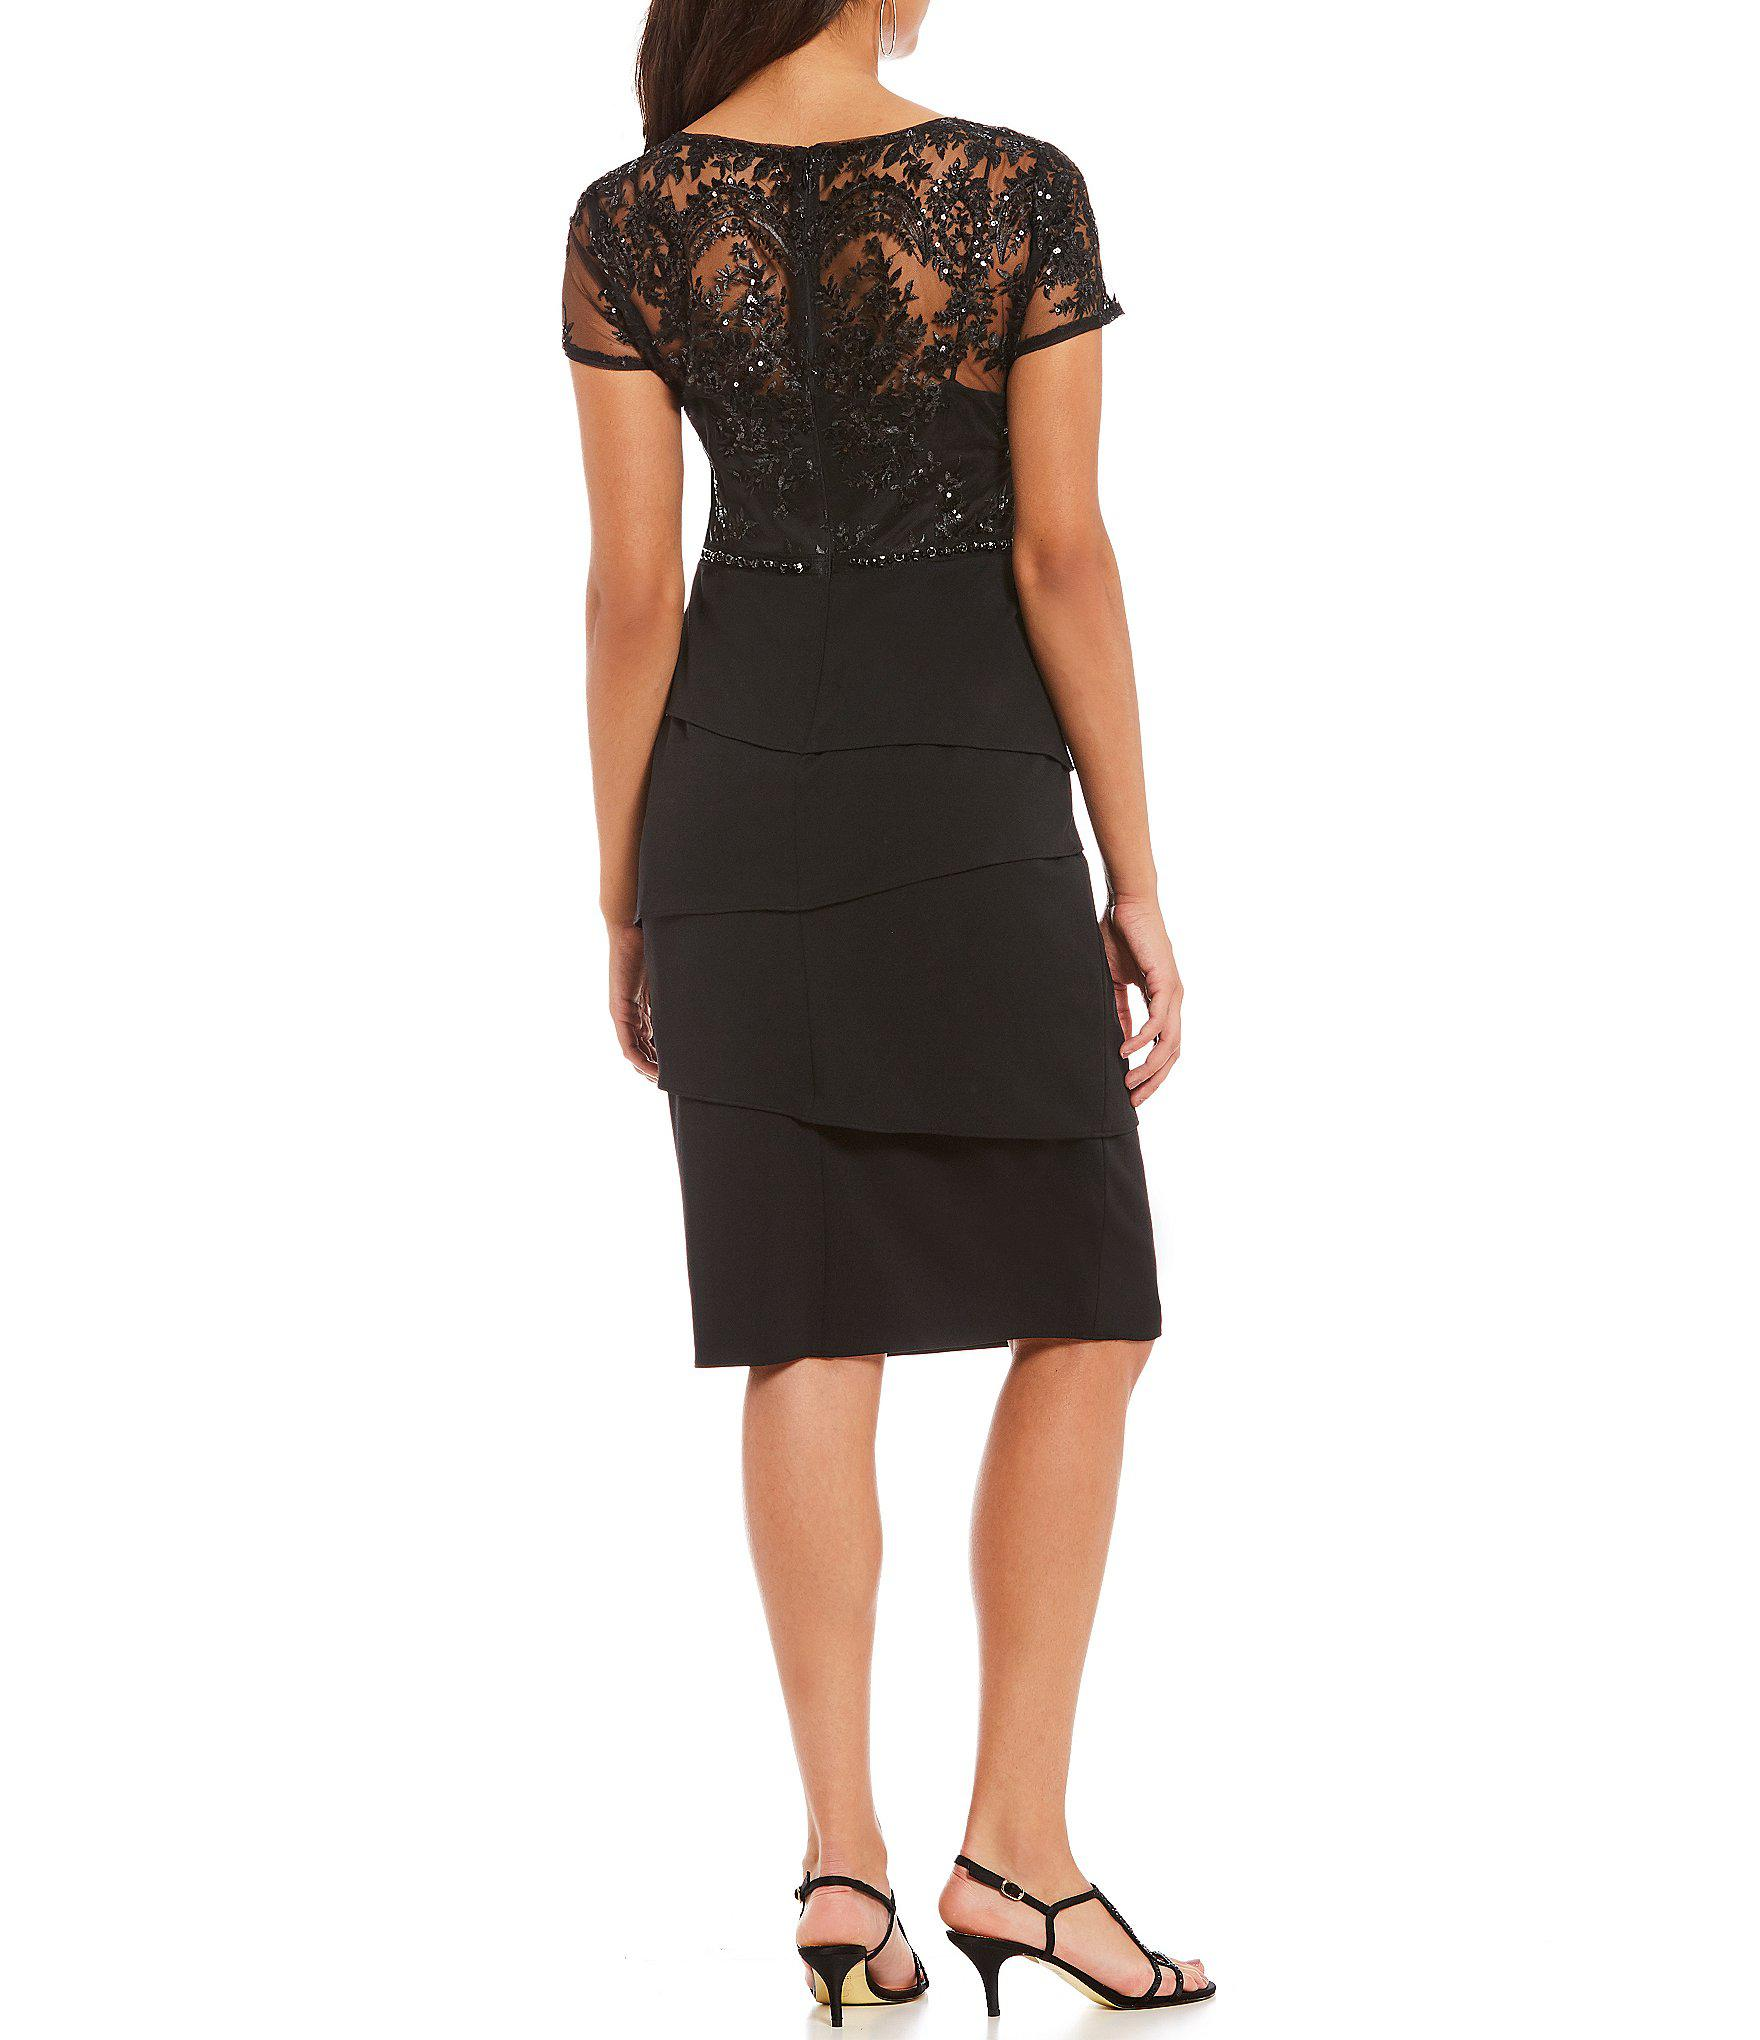 fa2753c1fd Lyst - Adrianna Papell Petite Short Sleeve Sequin Bodice Tiered ...